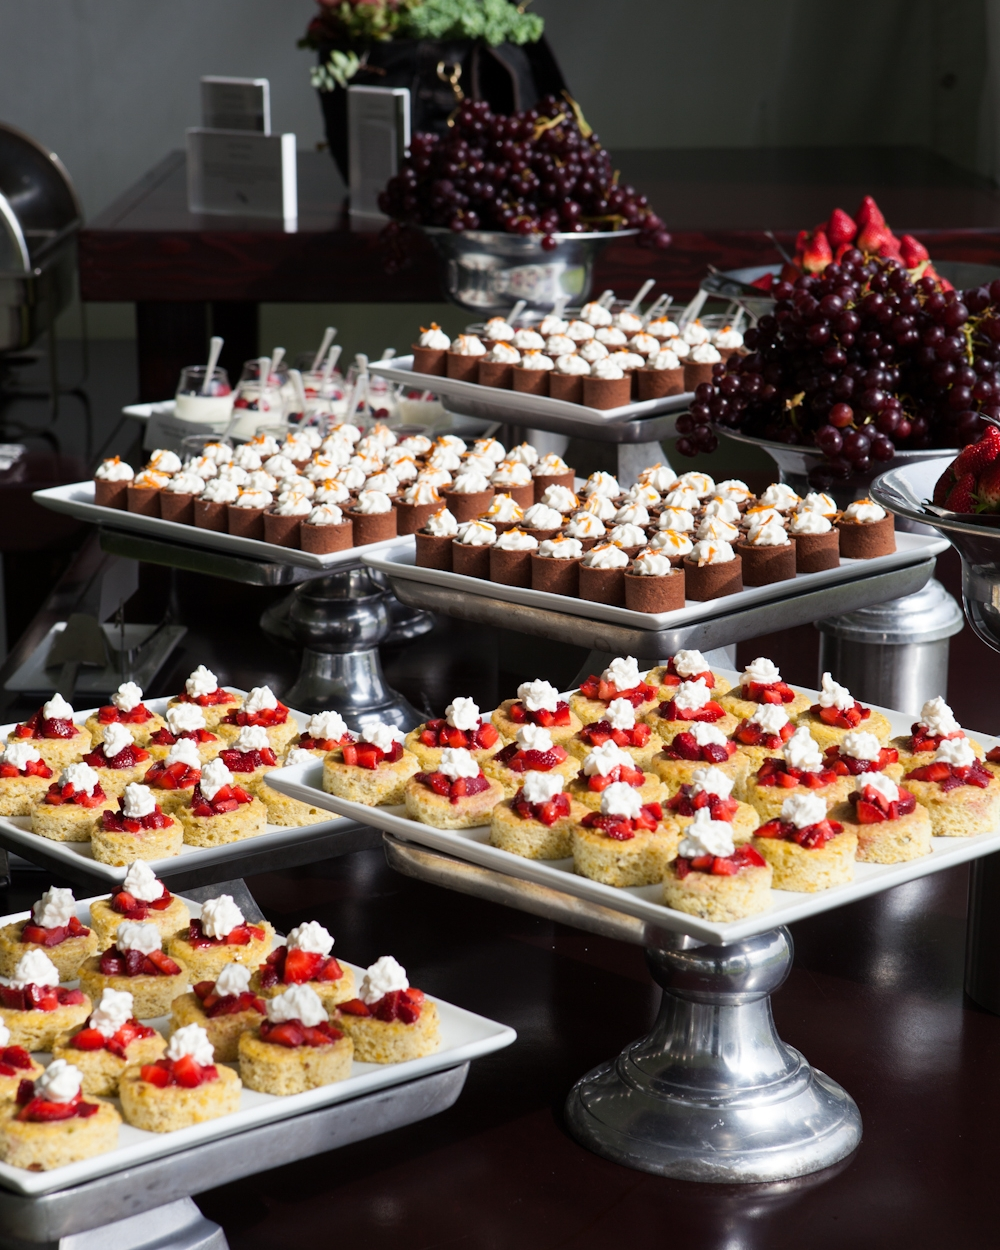 03_11 LOVE Dessert Buffet.jpg